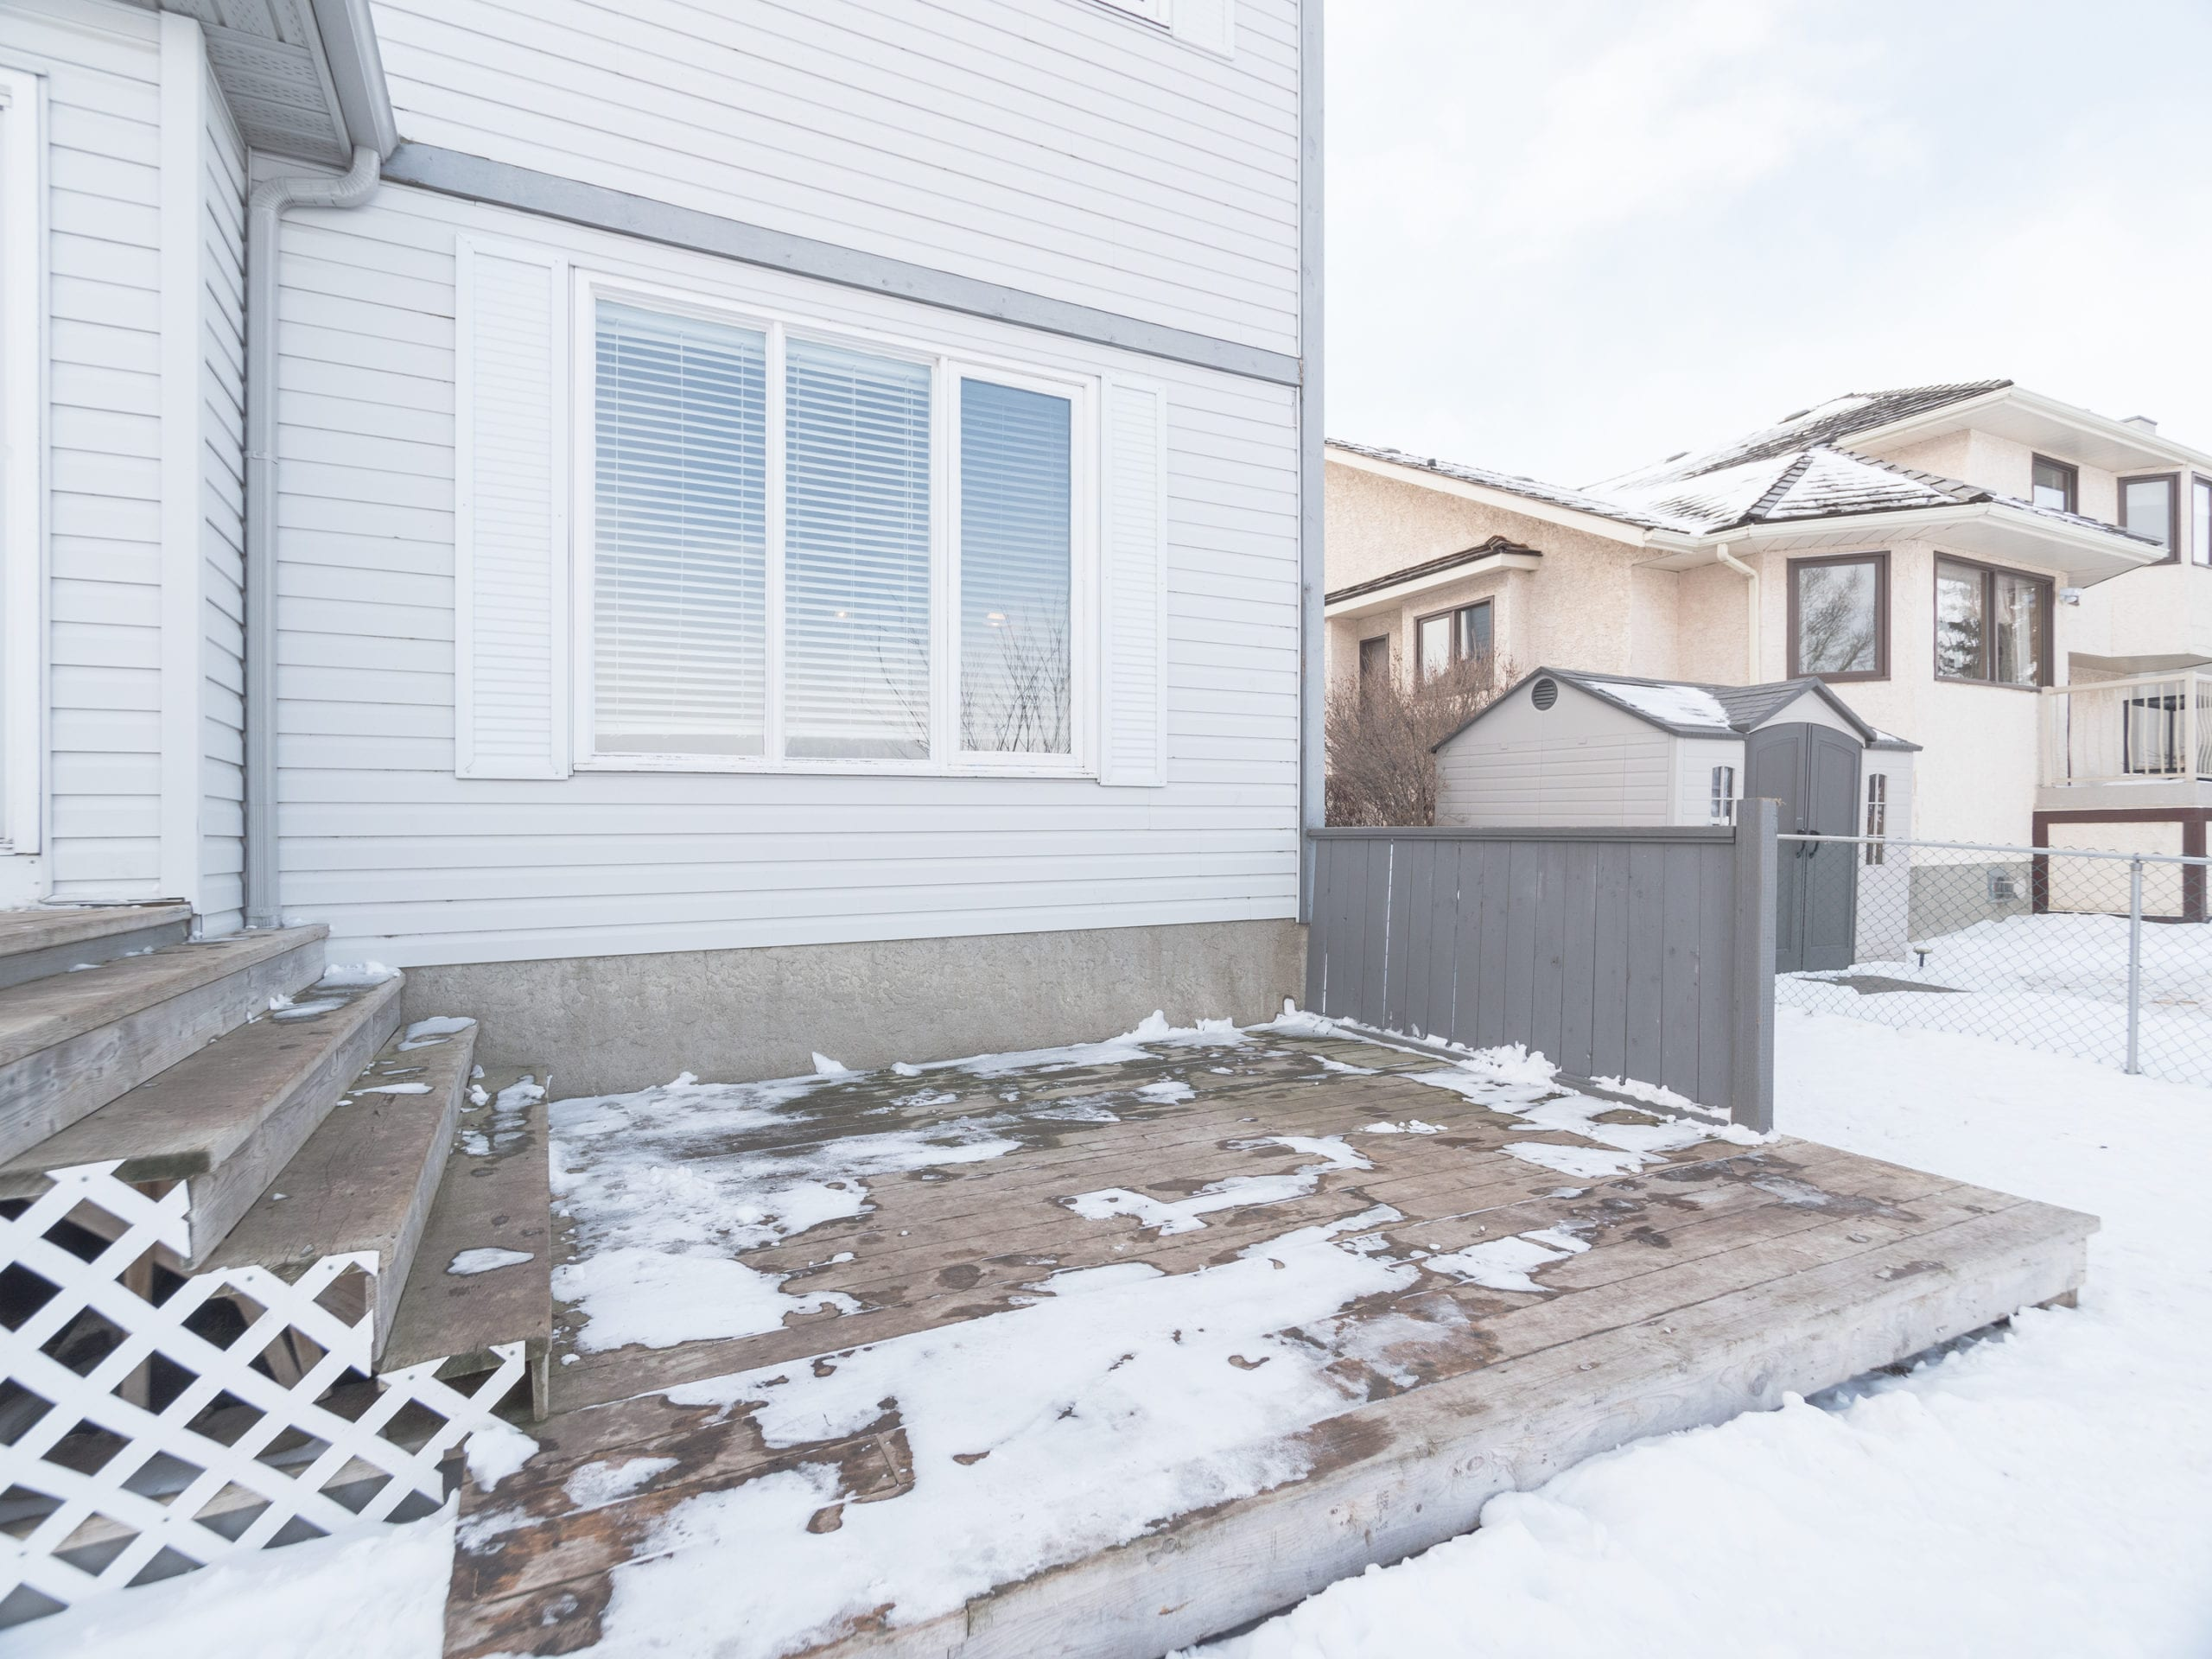 Hello Gorgeous - 143 Woodside Road NW, Airdrie AB. - Tara Molina Real Estate (41 of 54)